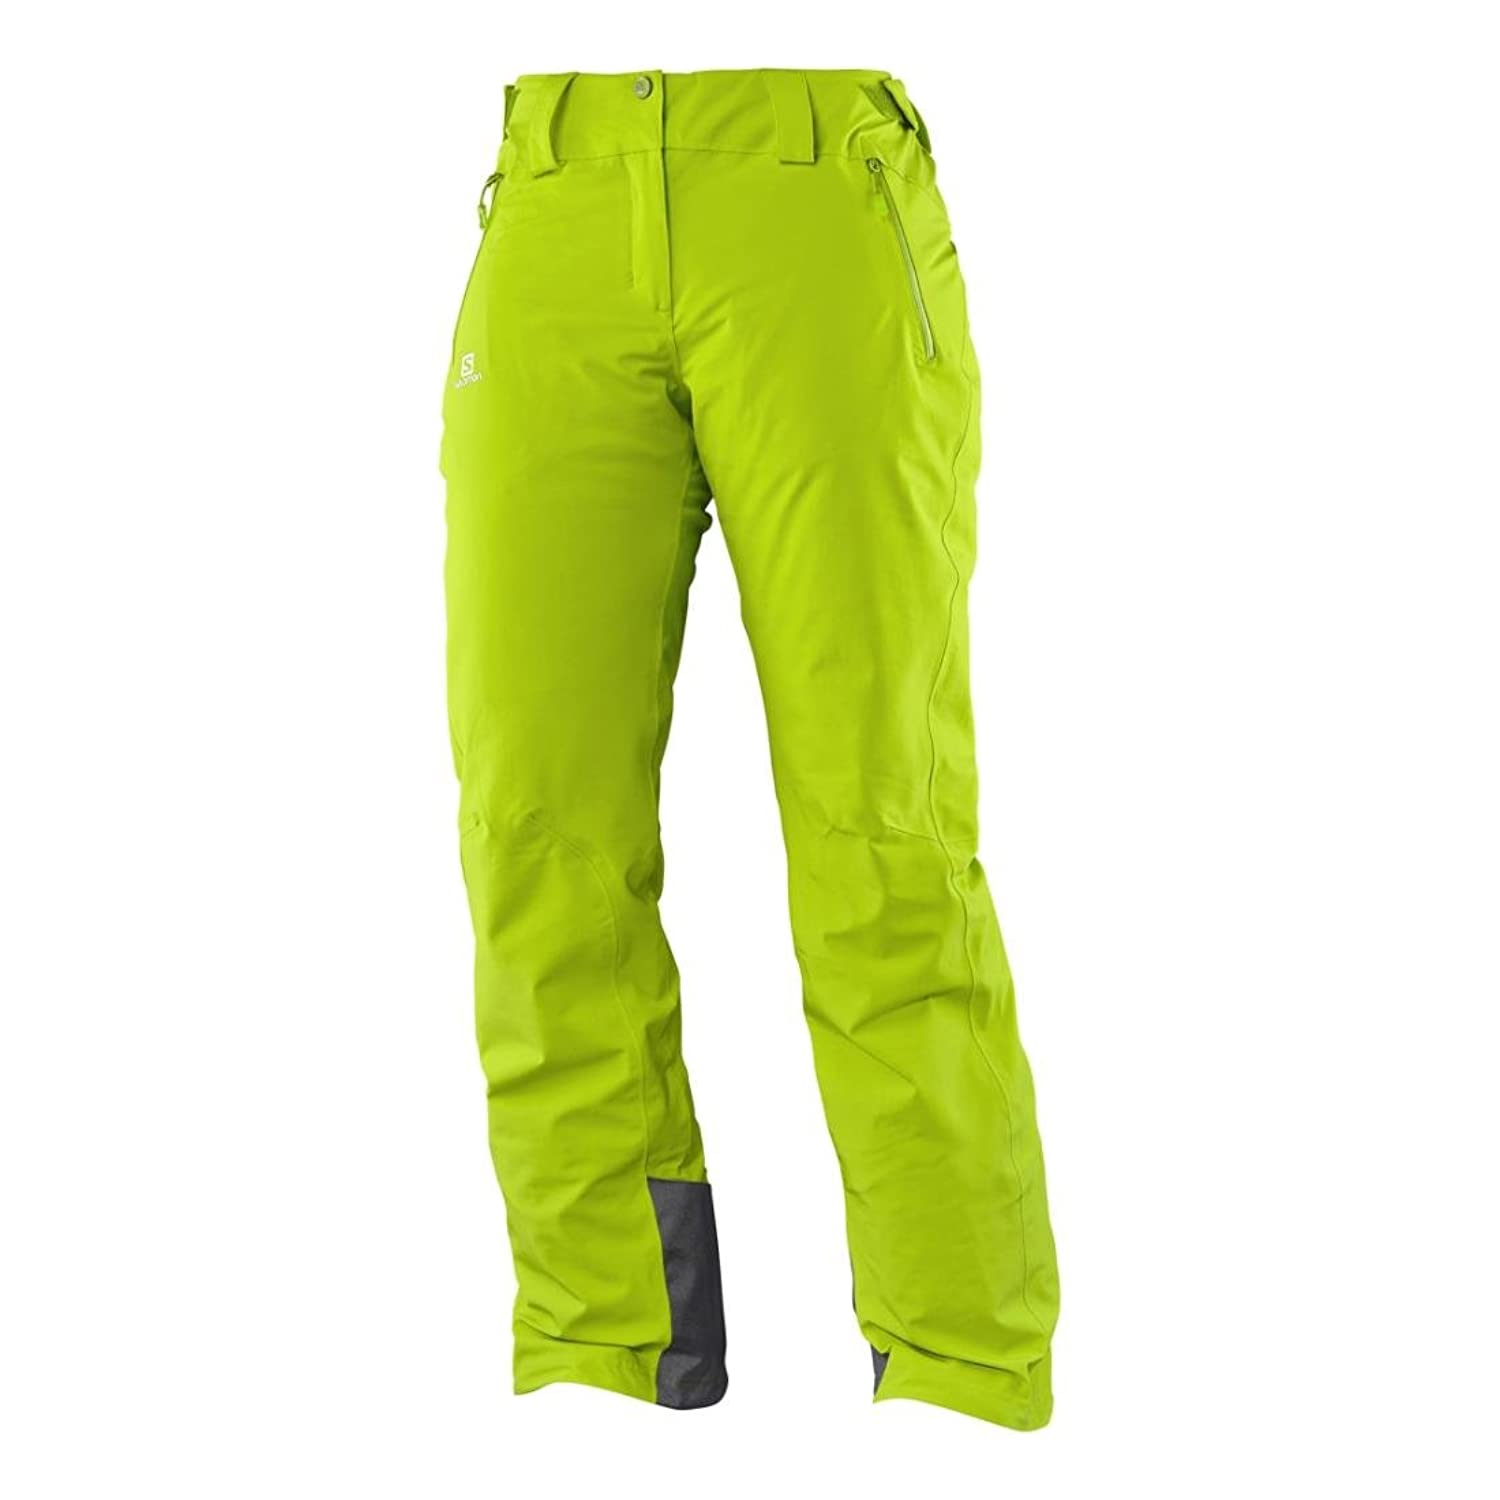 Salomon Snow Pants - Salomon Womens Iceglory Sn...